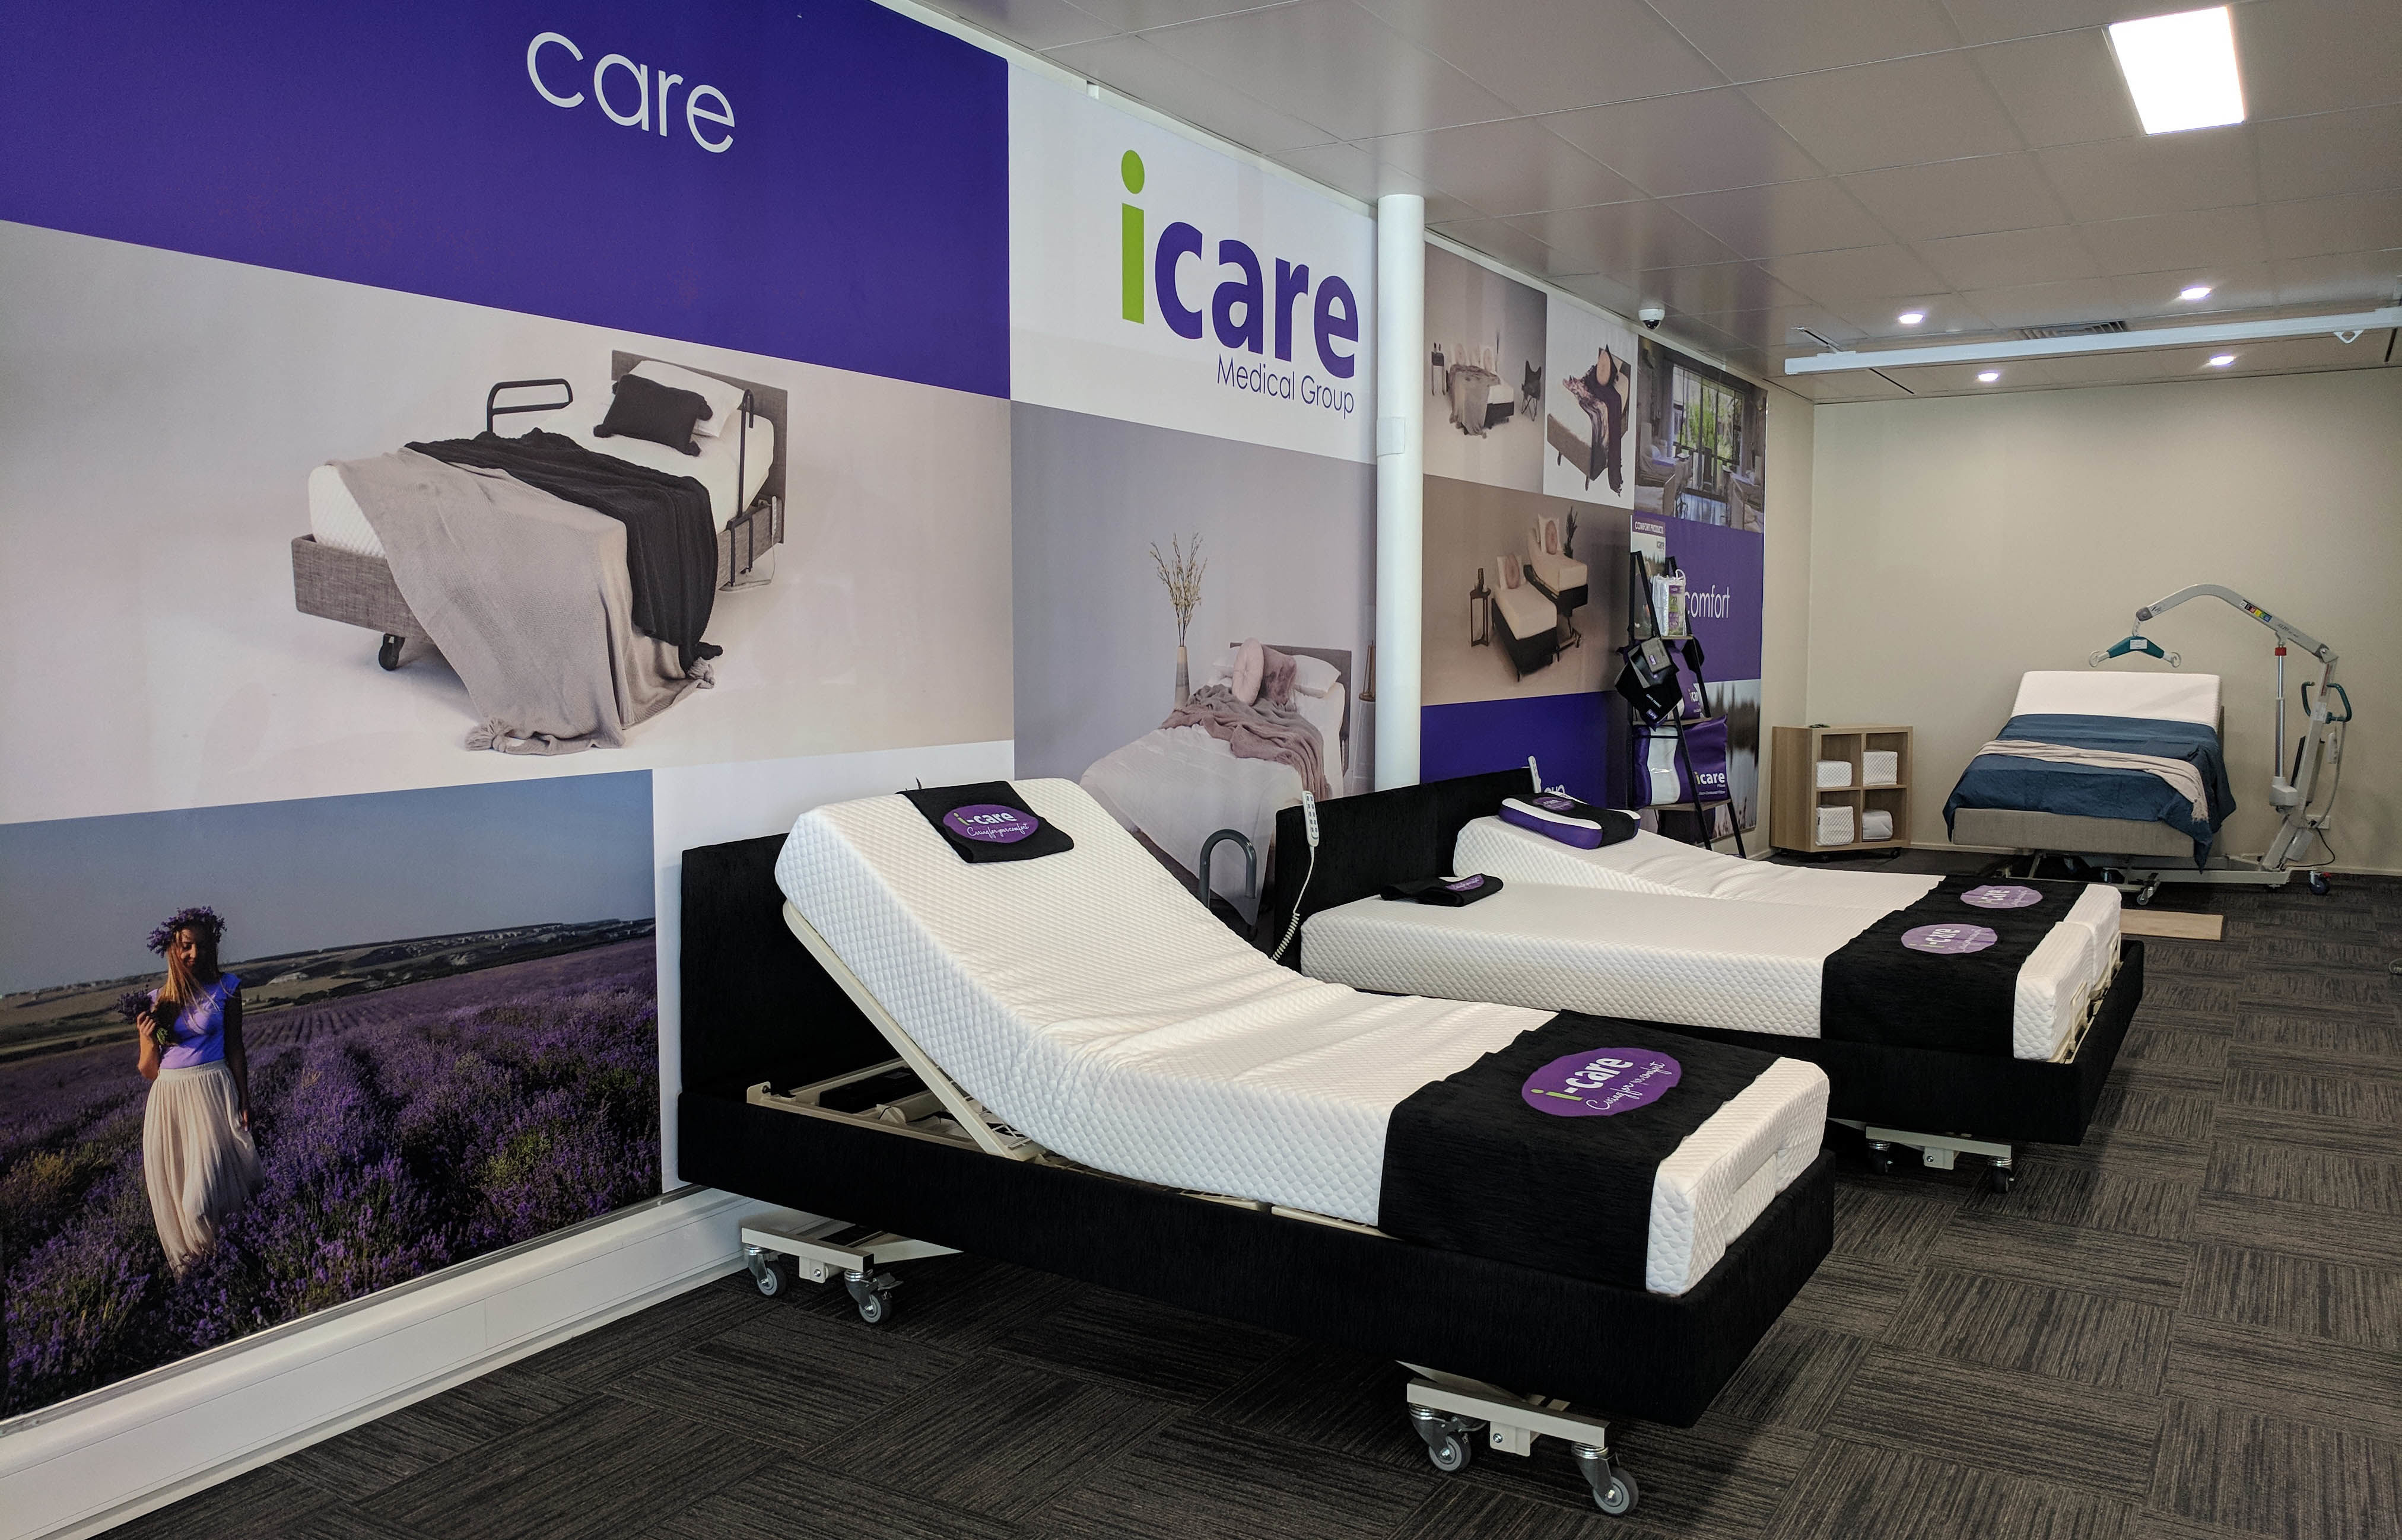 Traralgon Showroom ICare Beds